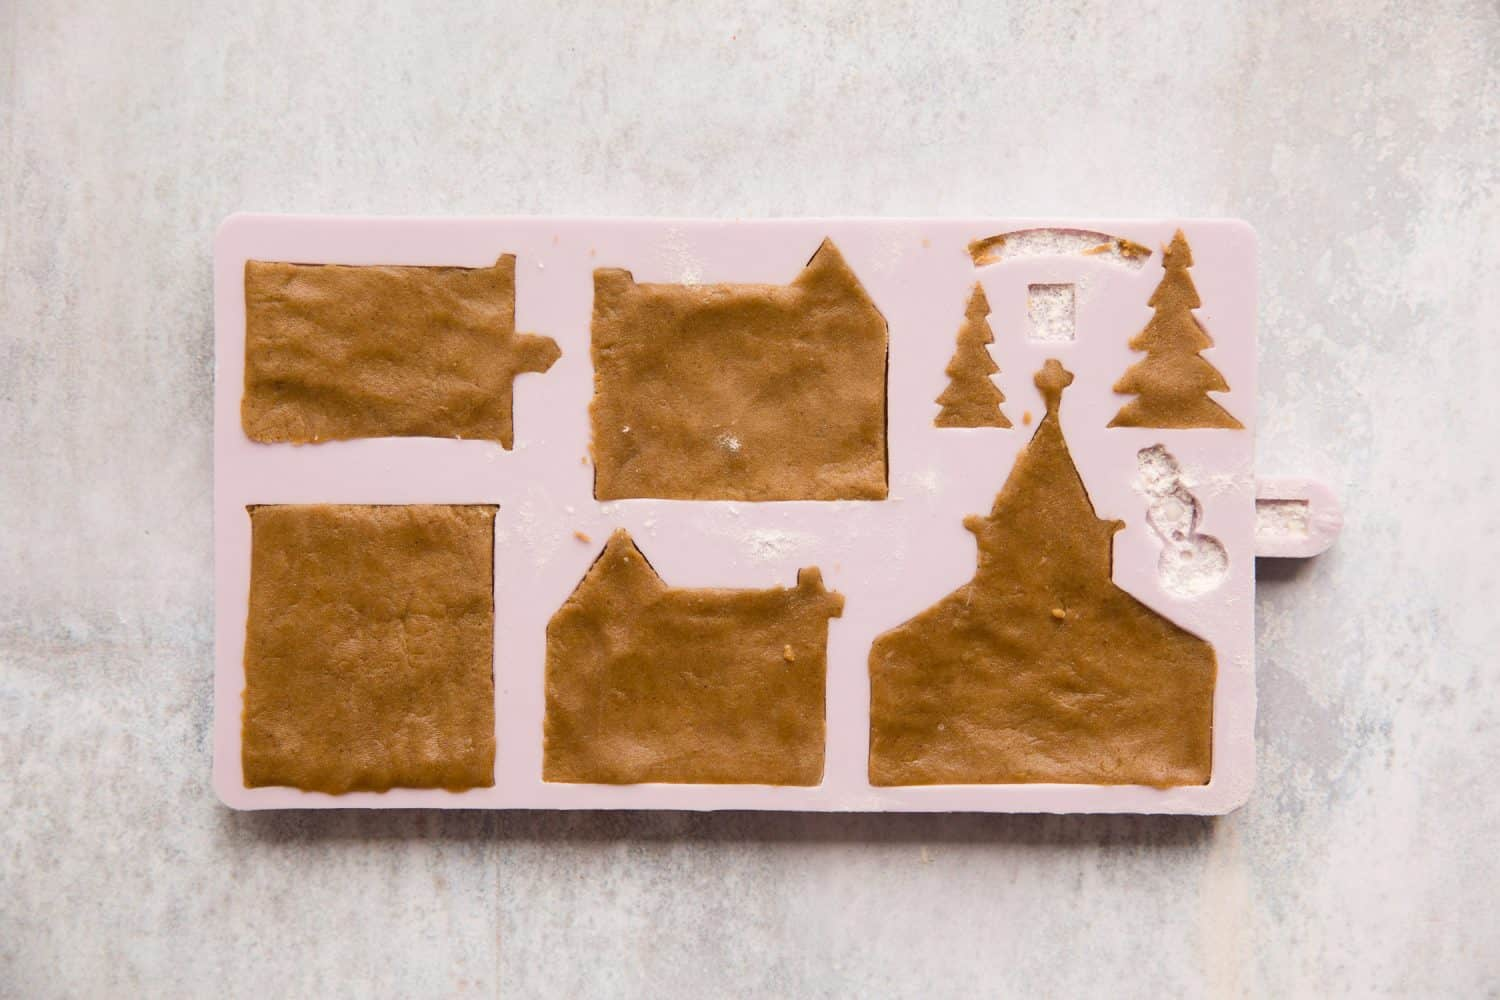 A gingerbread mould that has gingerbread dough pressed into it.